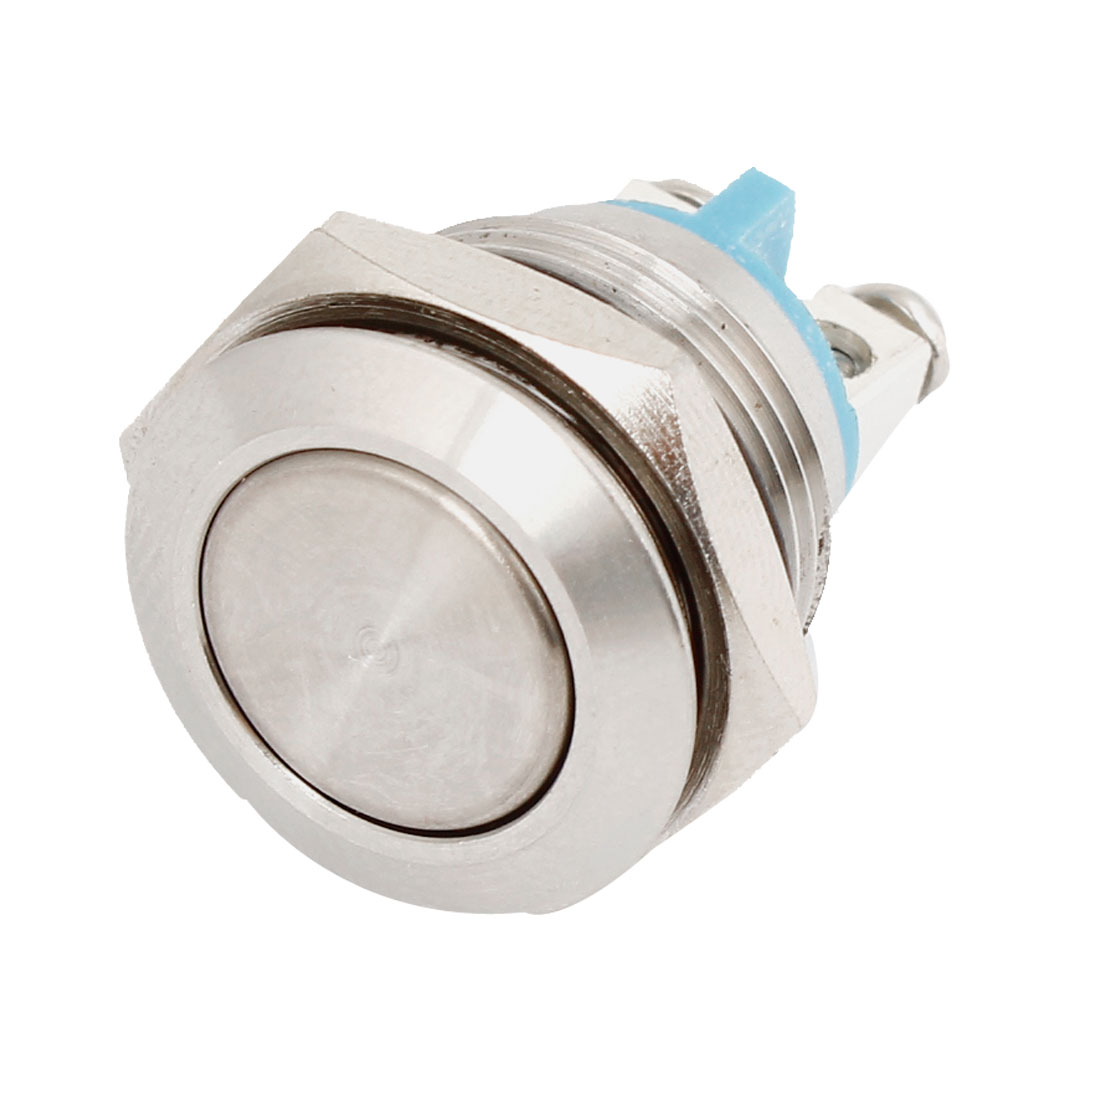 Momentary SPST 19mm Panel Cutout 2 Screw Terminals Stainless Steel Flat Head Push Button Switch